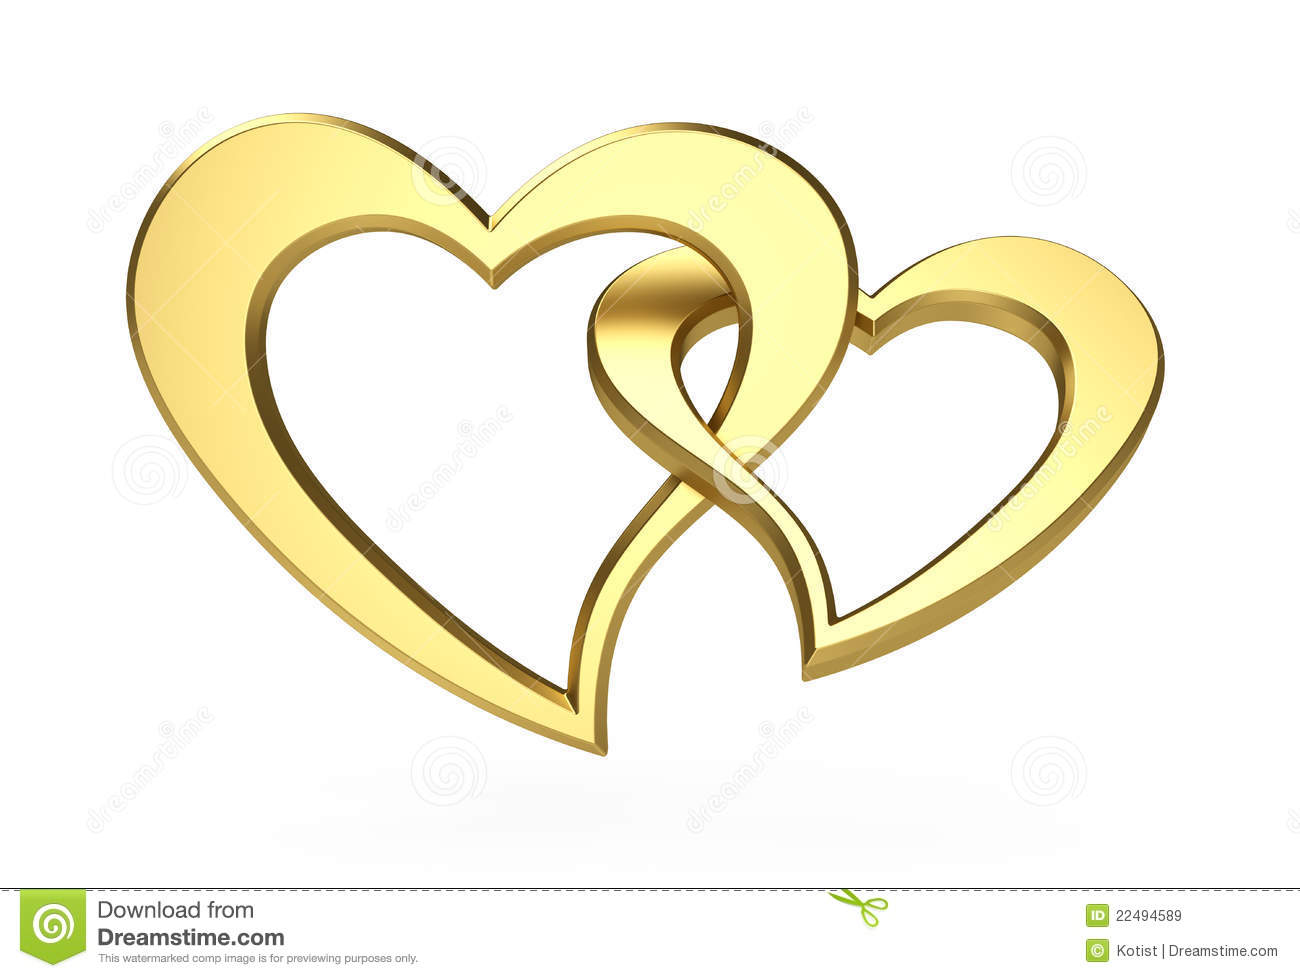 Golden Hearts Royalty Free Stock Images.